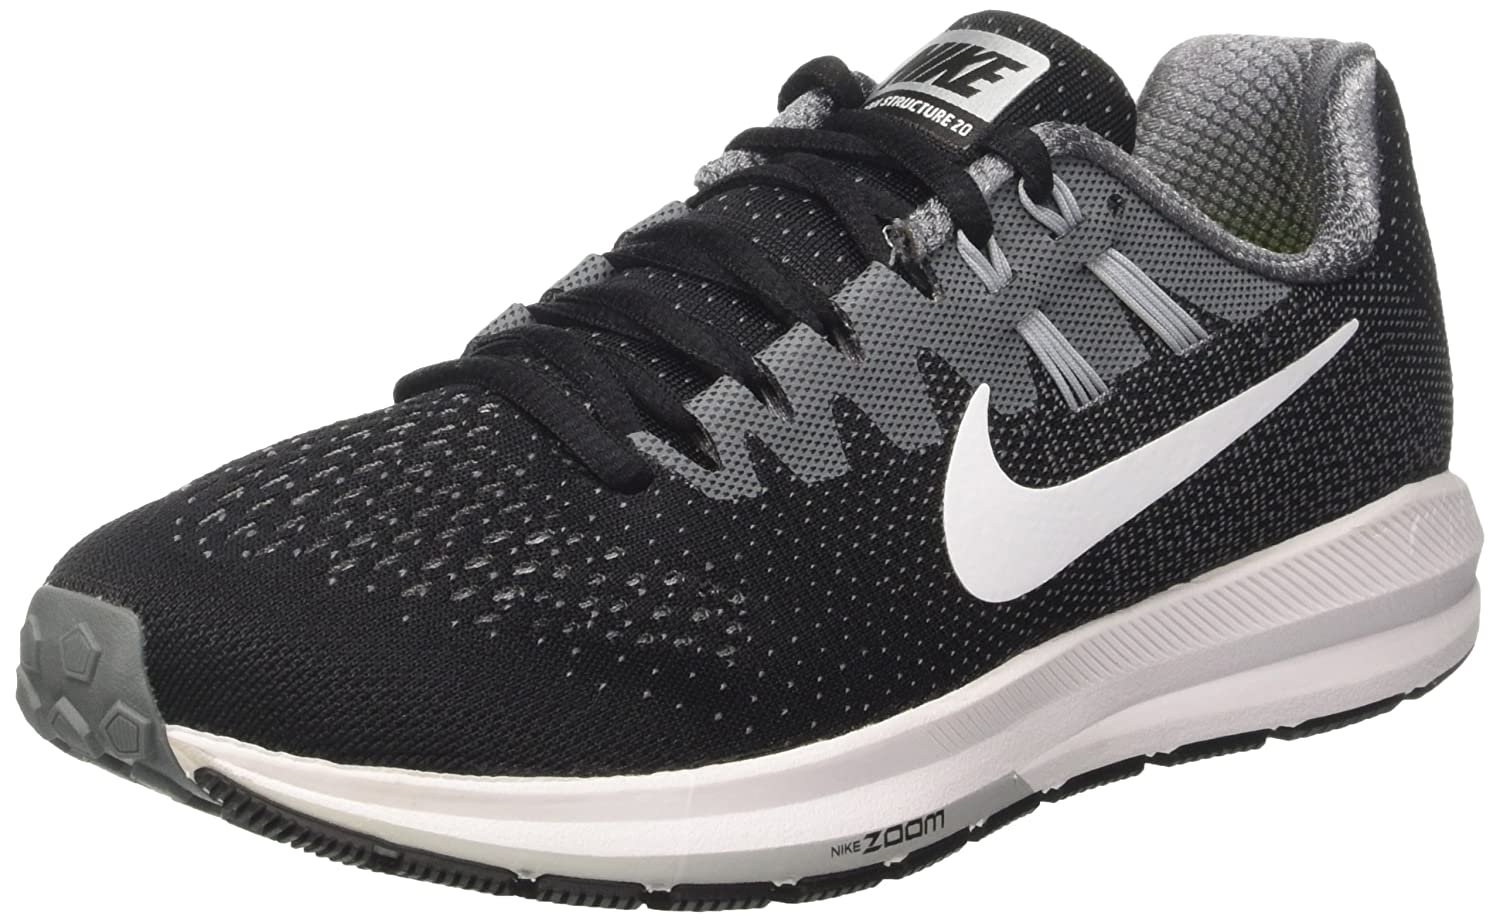 NIKE Womens Air Zoom Structure 20 Lightweight Fitness Running Shoes B01LRQ131A 11.5 B(M) US|Black/White-cool Grey-pure Platinum